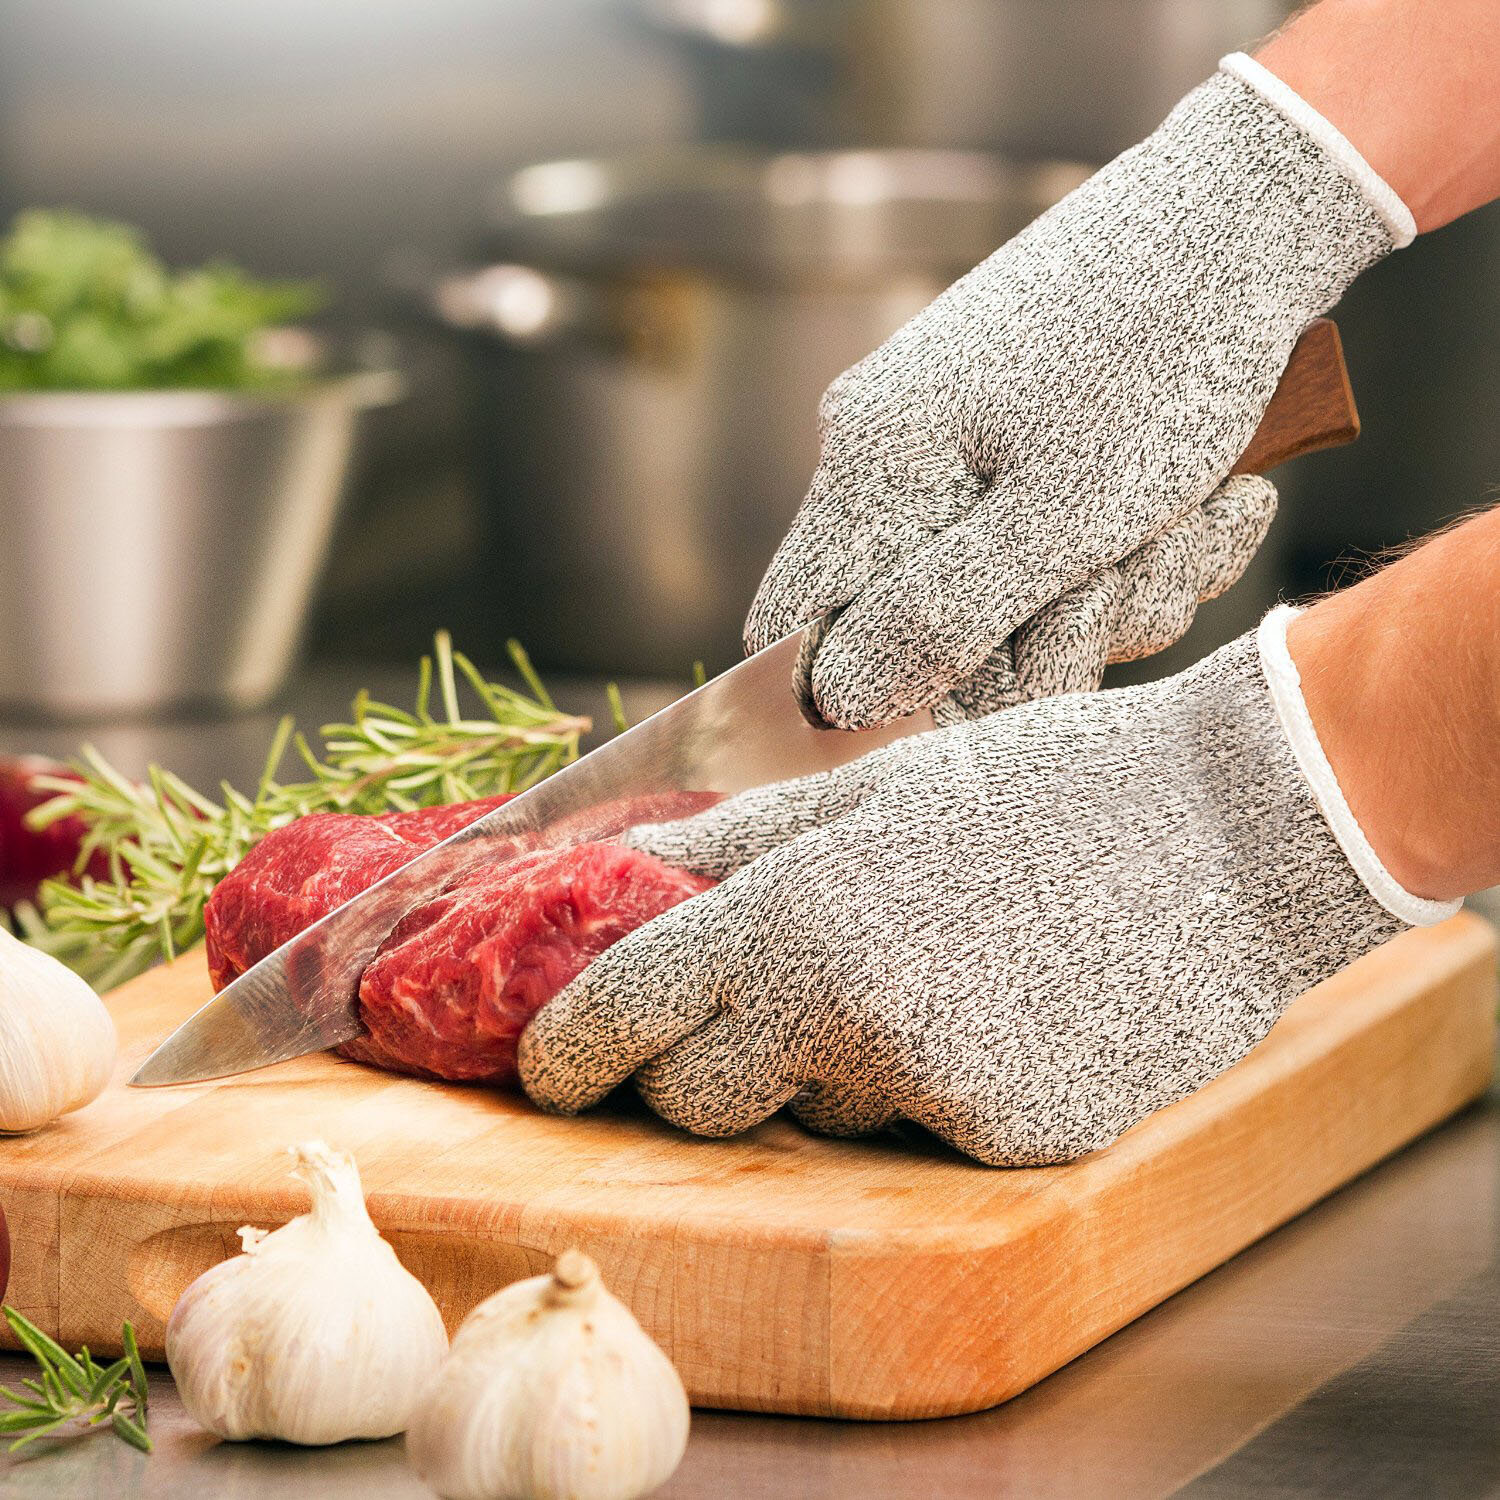 KCASA KC-CG01 1 Pair HPPE High Performance Level 5 Protection Food Grade Cut Resistant Gloves